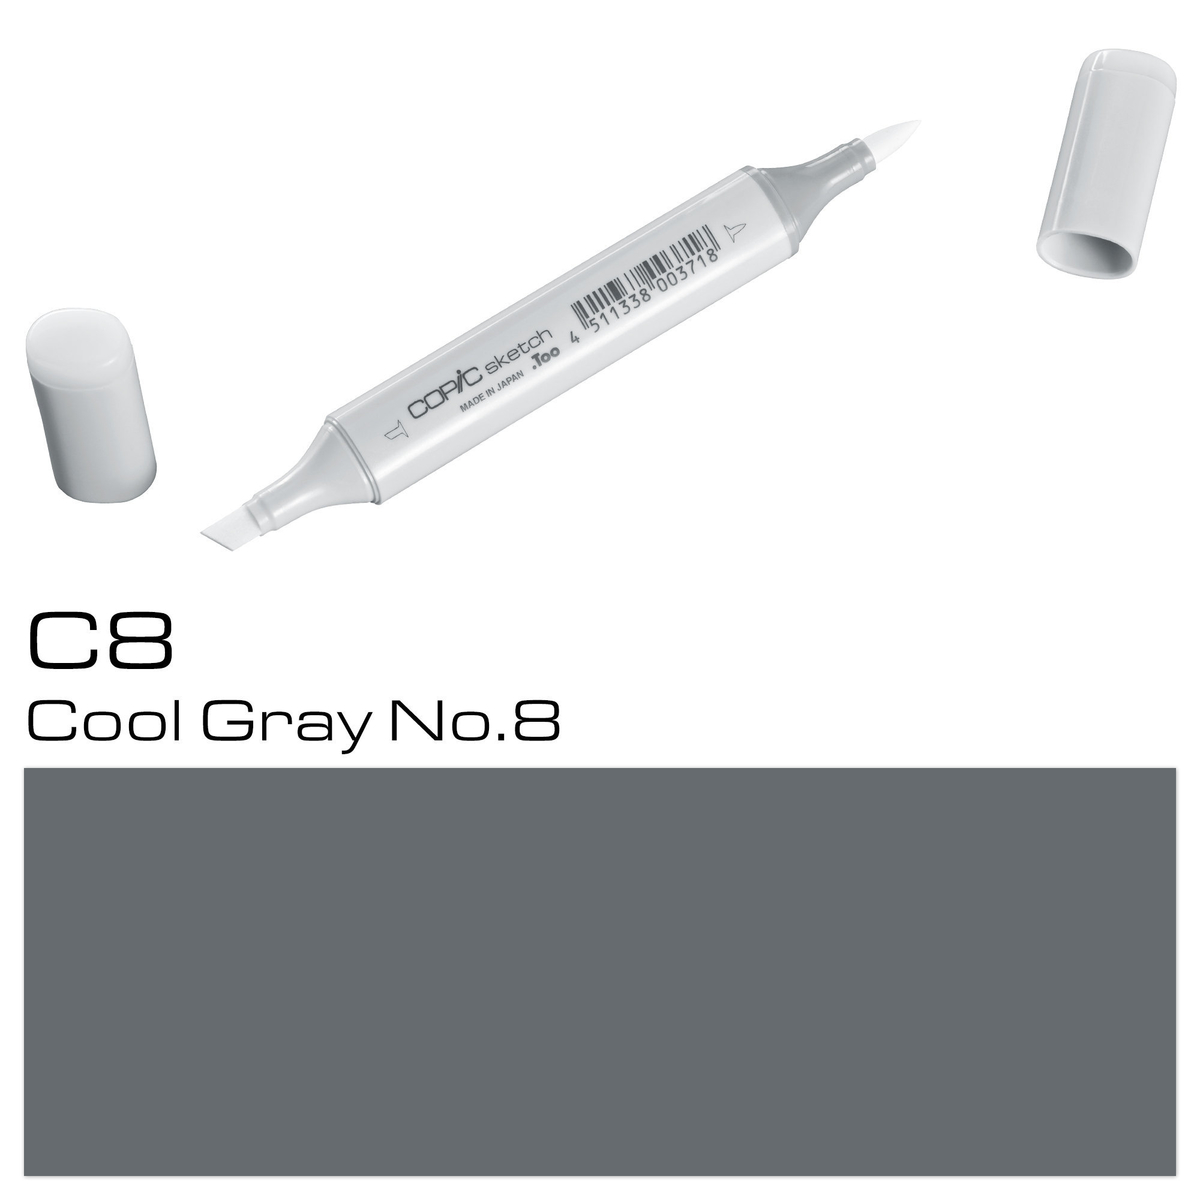 Copic Sketch C 8 cool gray